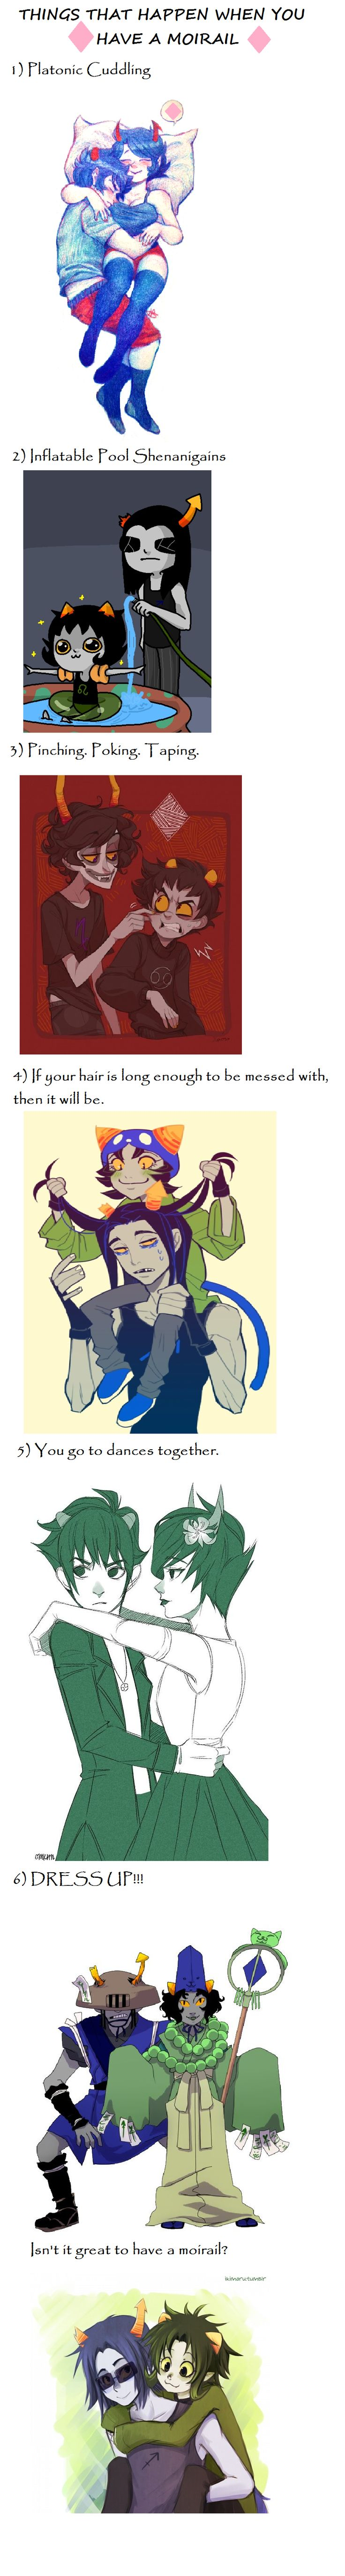 <> #Homestuck #Moirail<< I wish we had this kind of relationship on earth<<I have a Morail :3